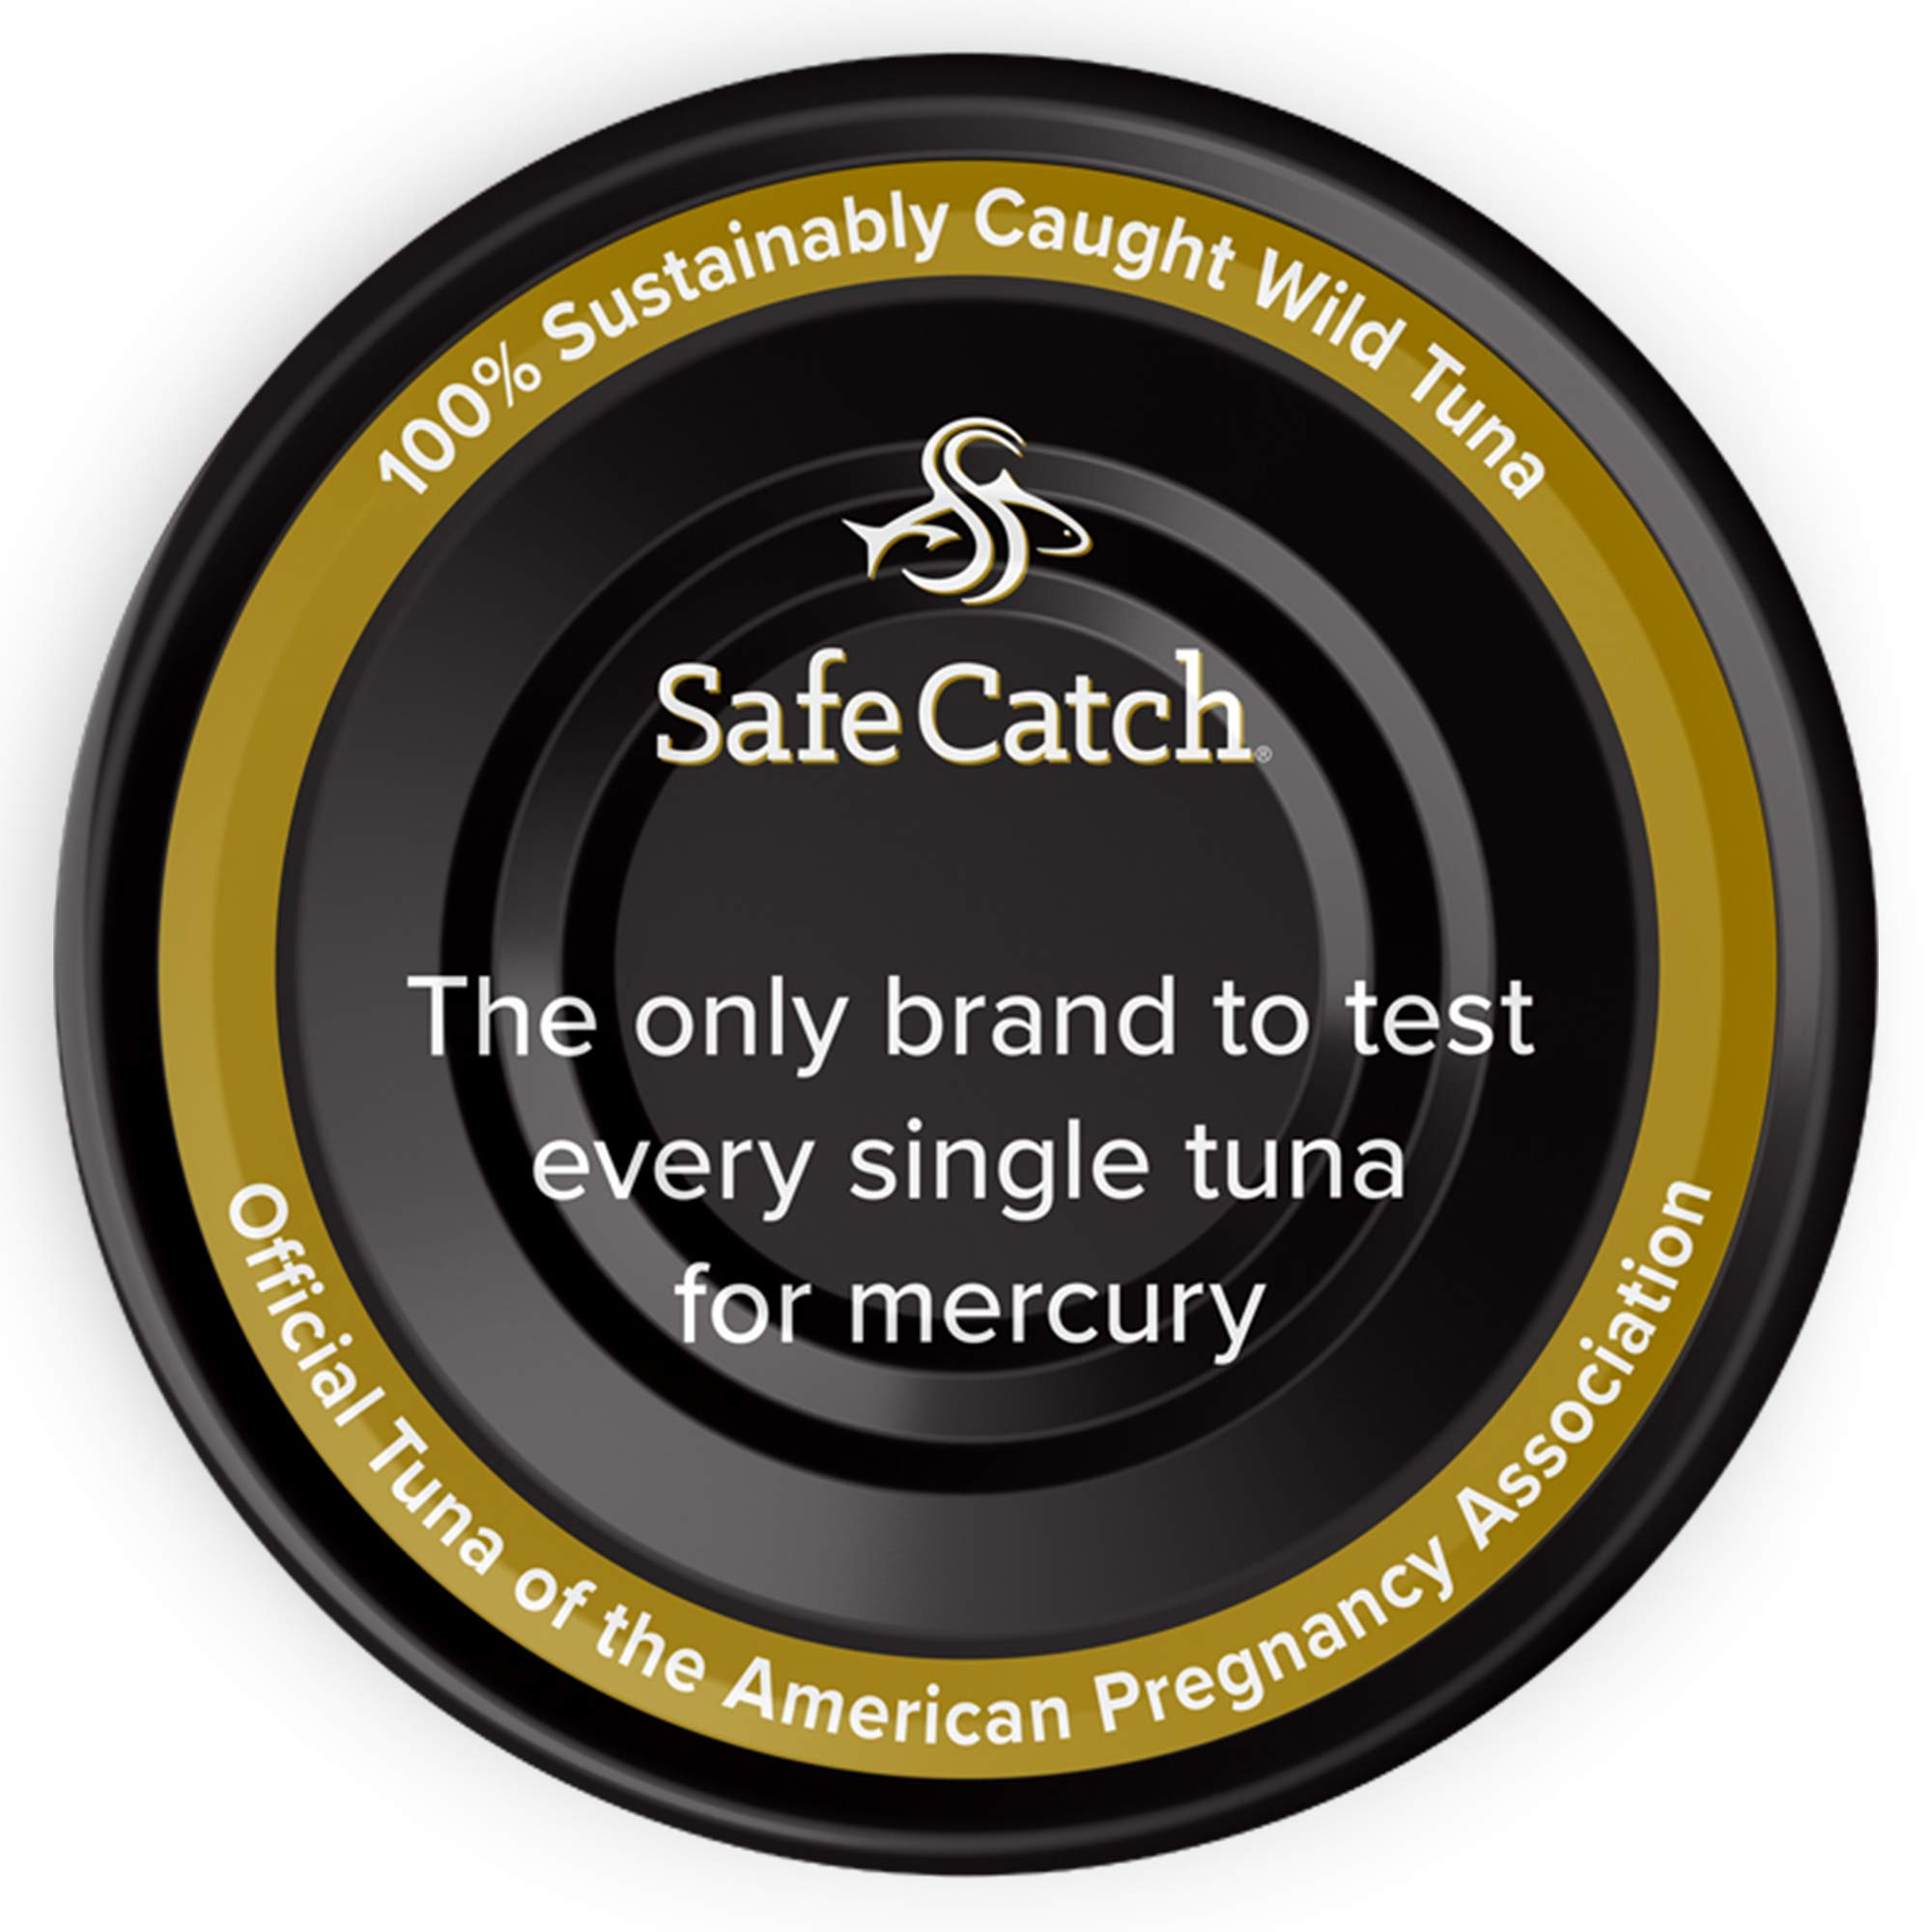 Safe Catch Ahi, Lowest Mercury Solid Wild Yellowfin Tuna Steak, 5 oz Can. The Only Brand to Test Every Tuna for Mercury (6 Pack in Extra Virgin Olive Oil) by Safe Catch (Image #3)